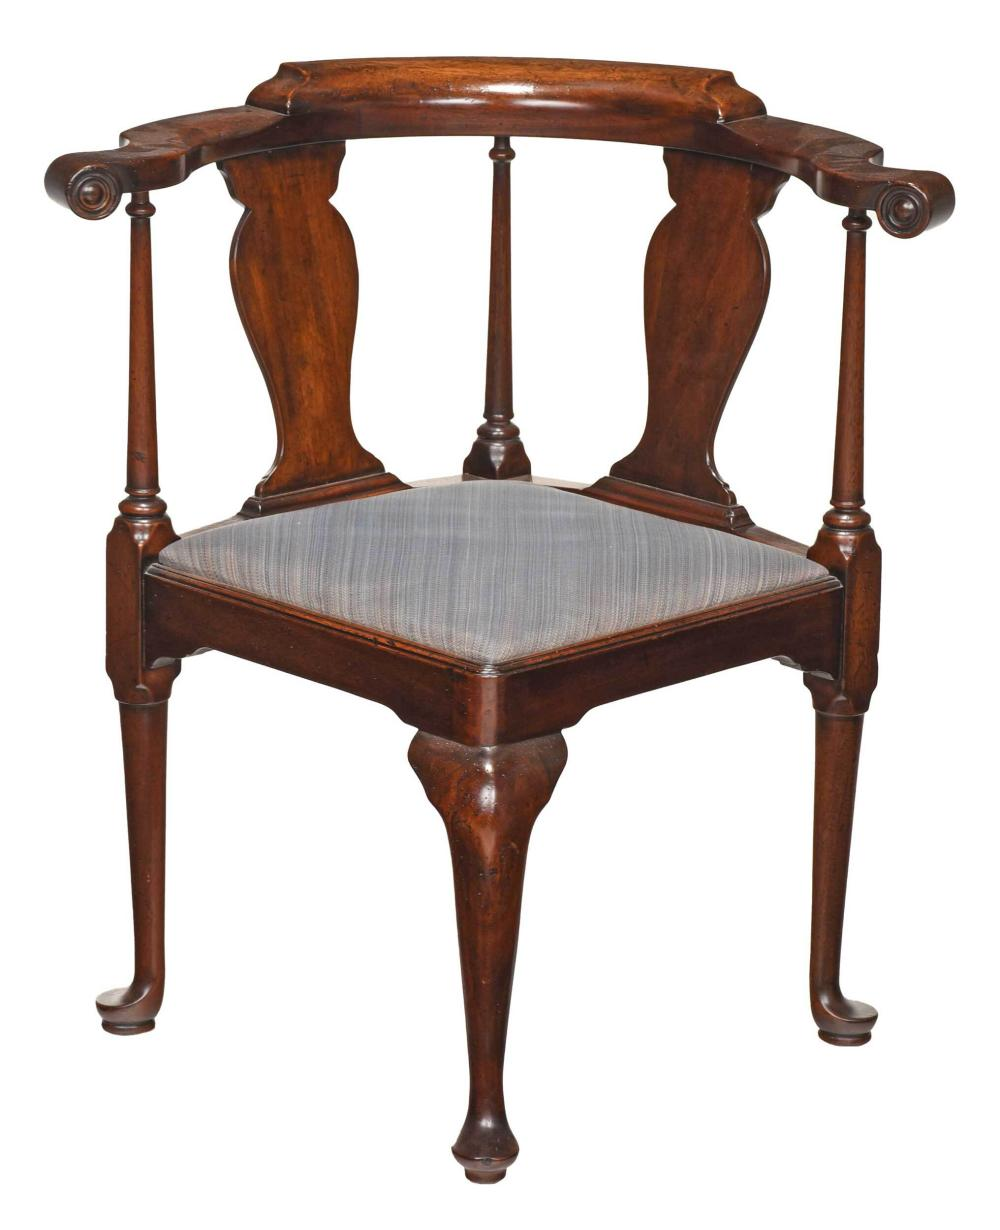 Queen Anne Style Mahogany Corner Chair